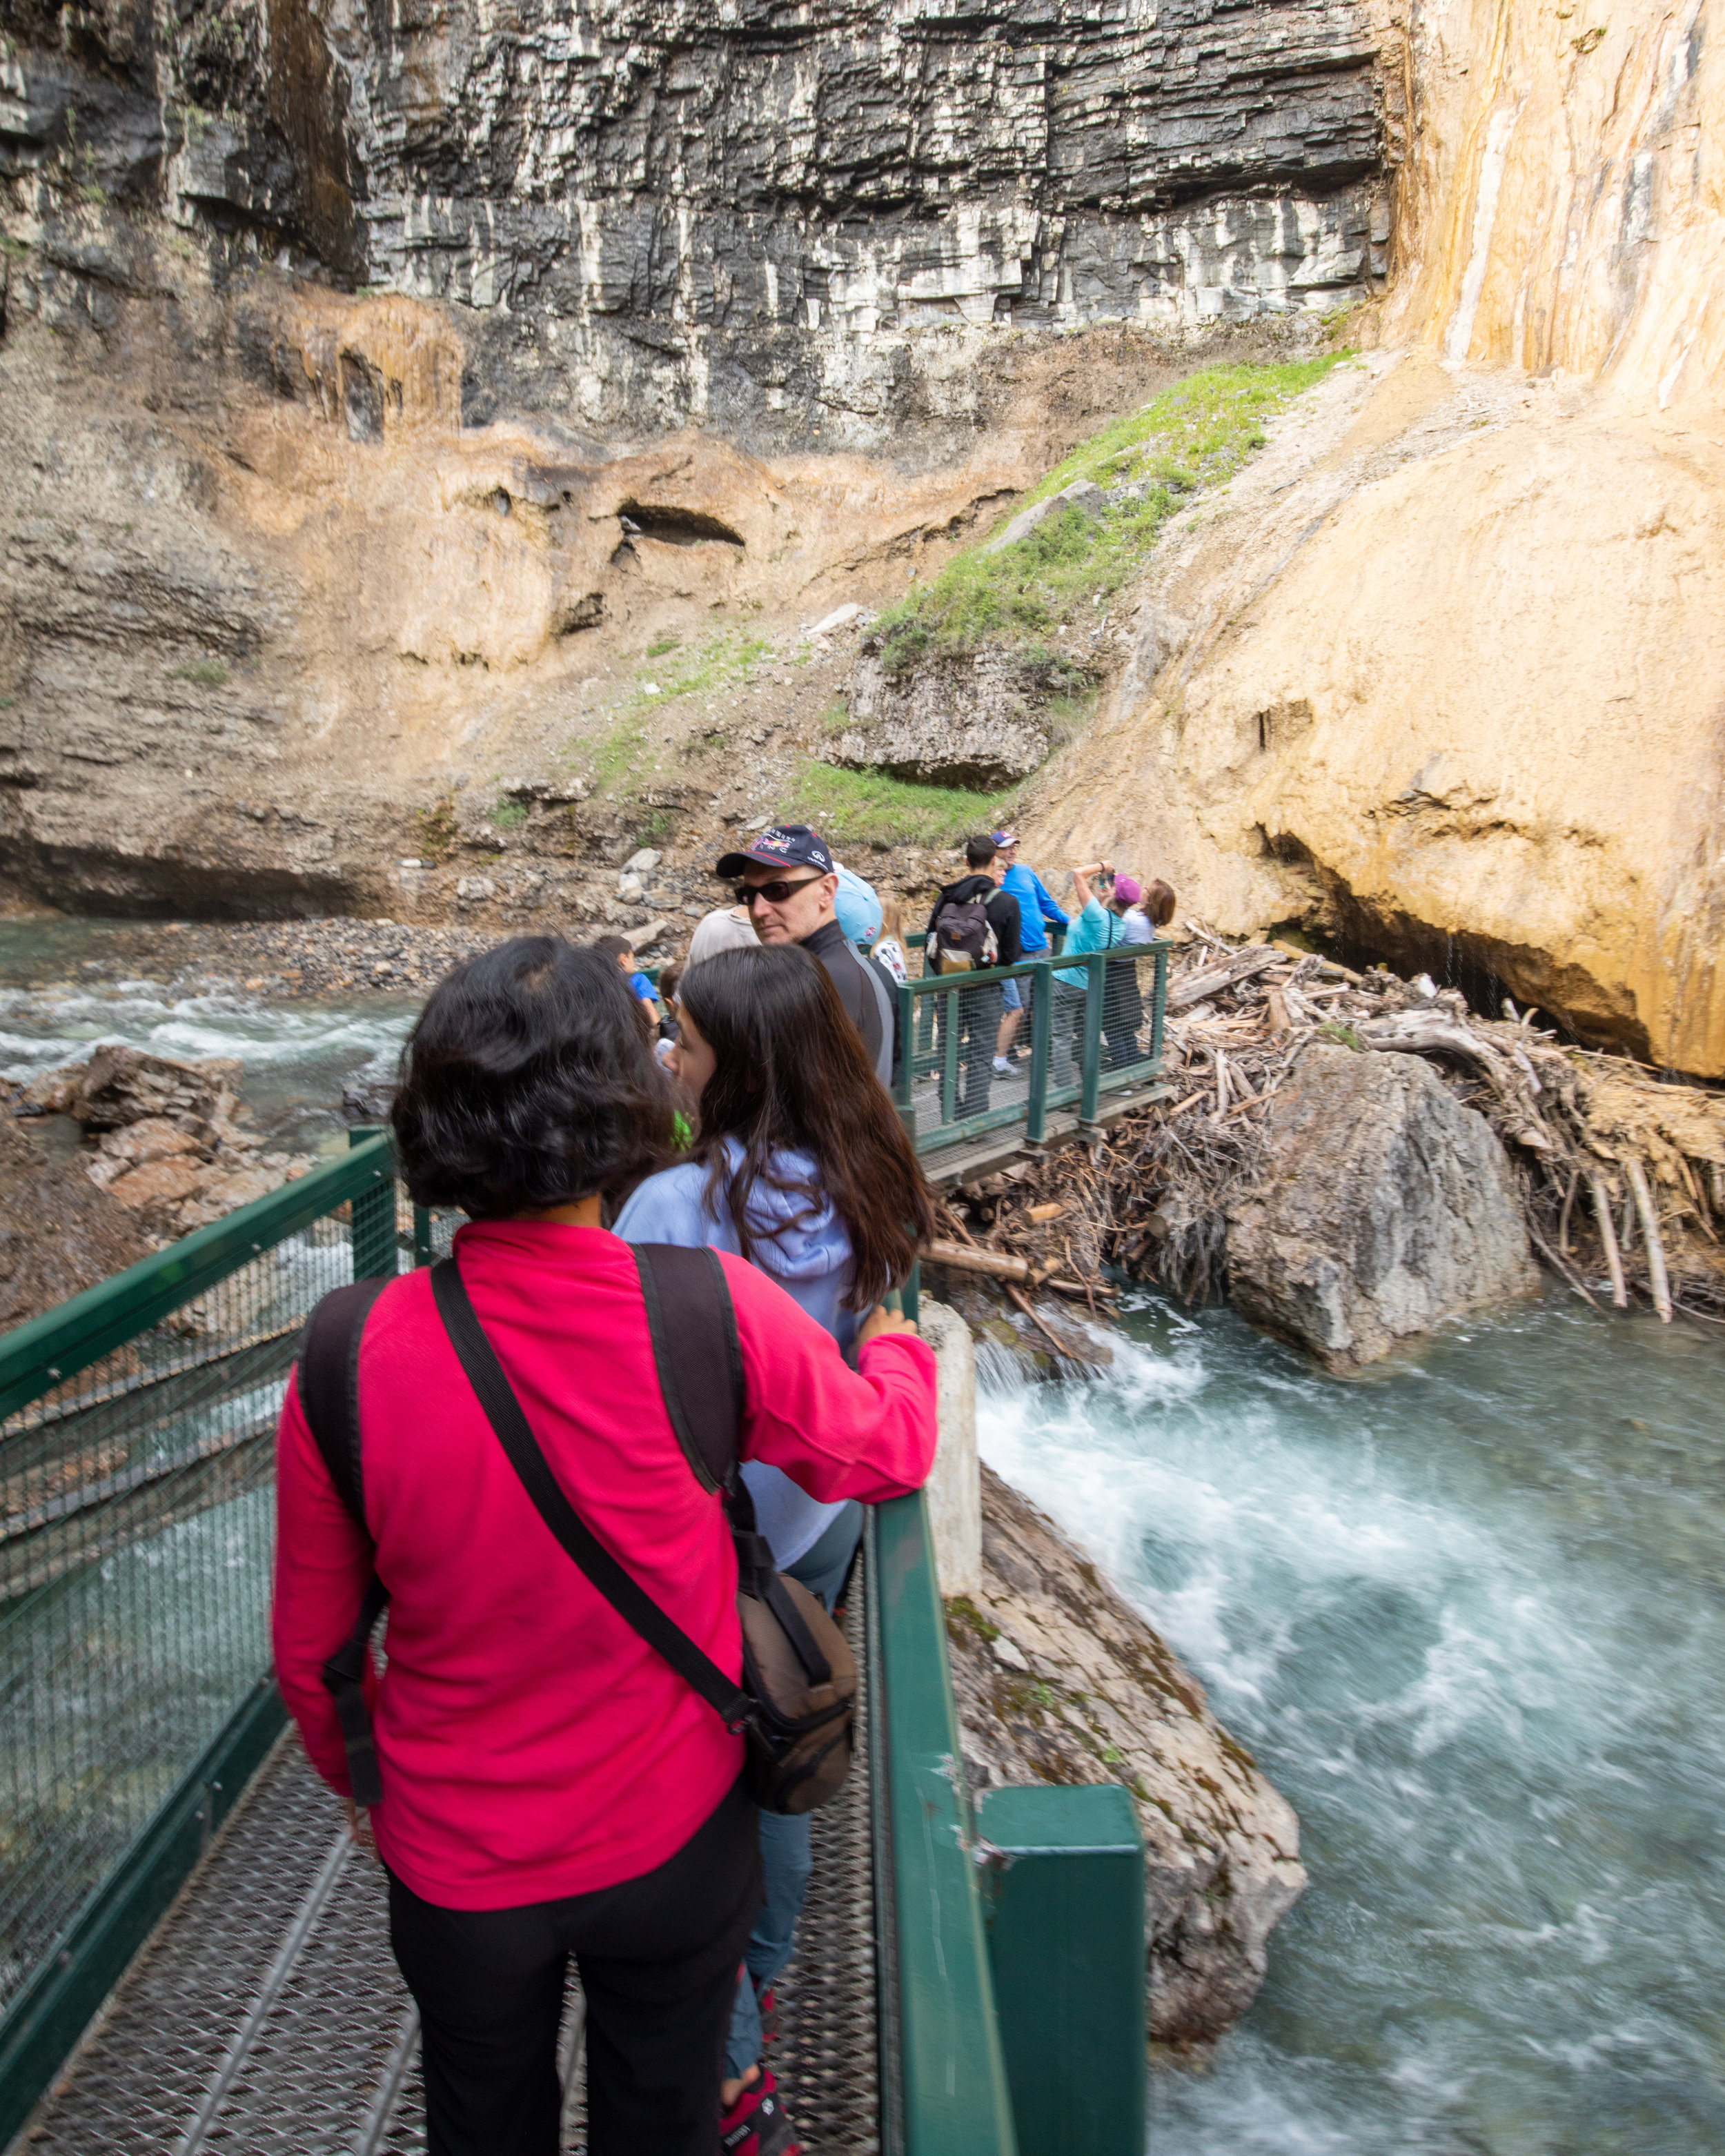 Queues at Upper Falls Johnston Canyon